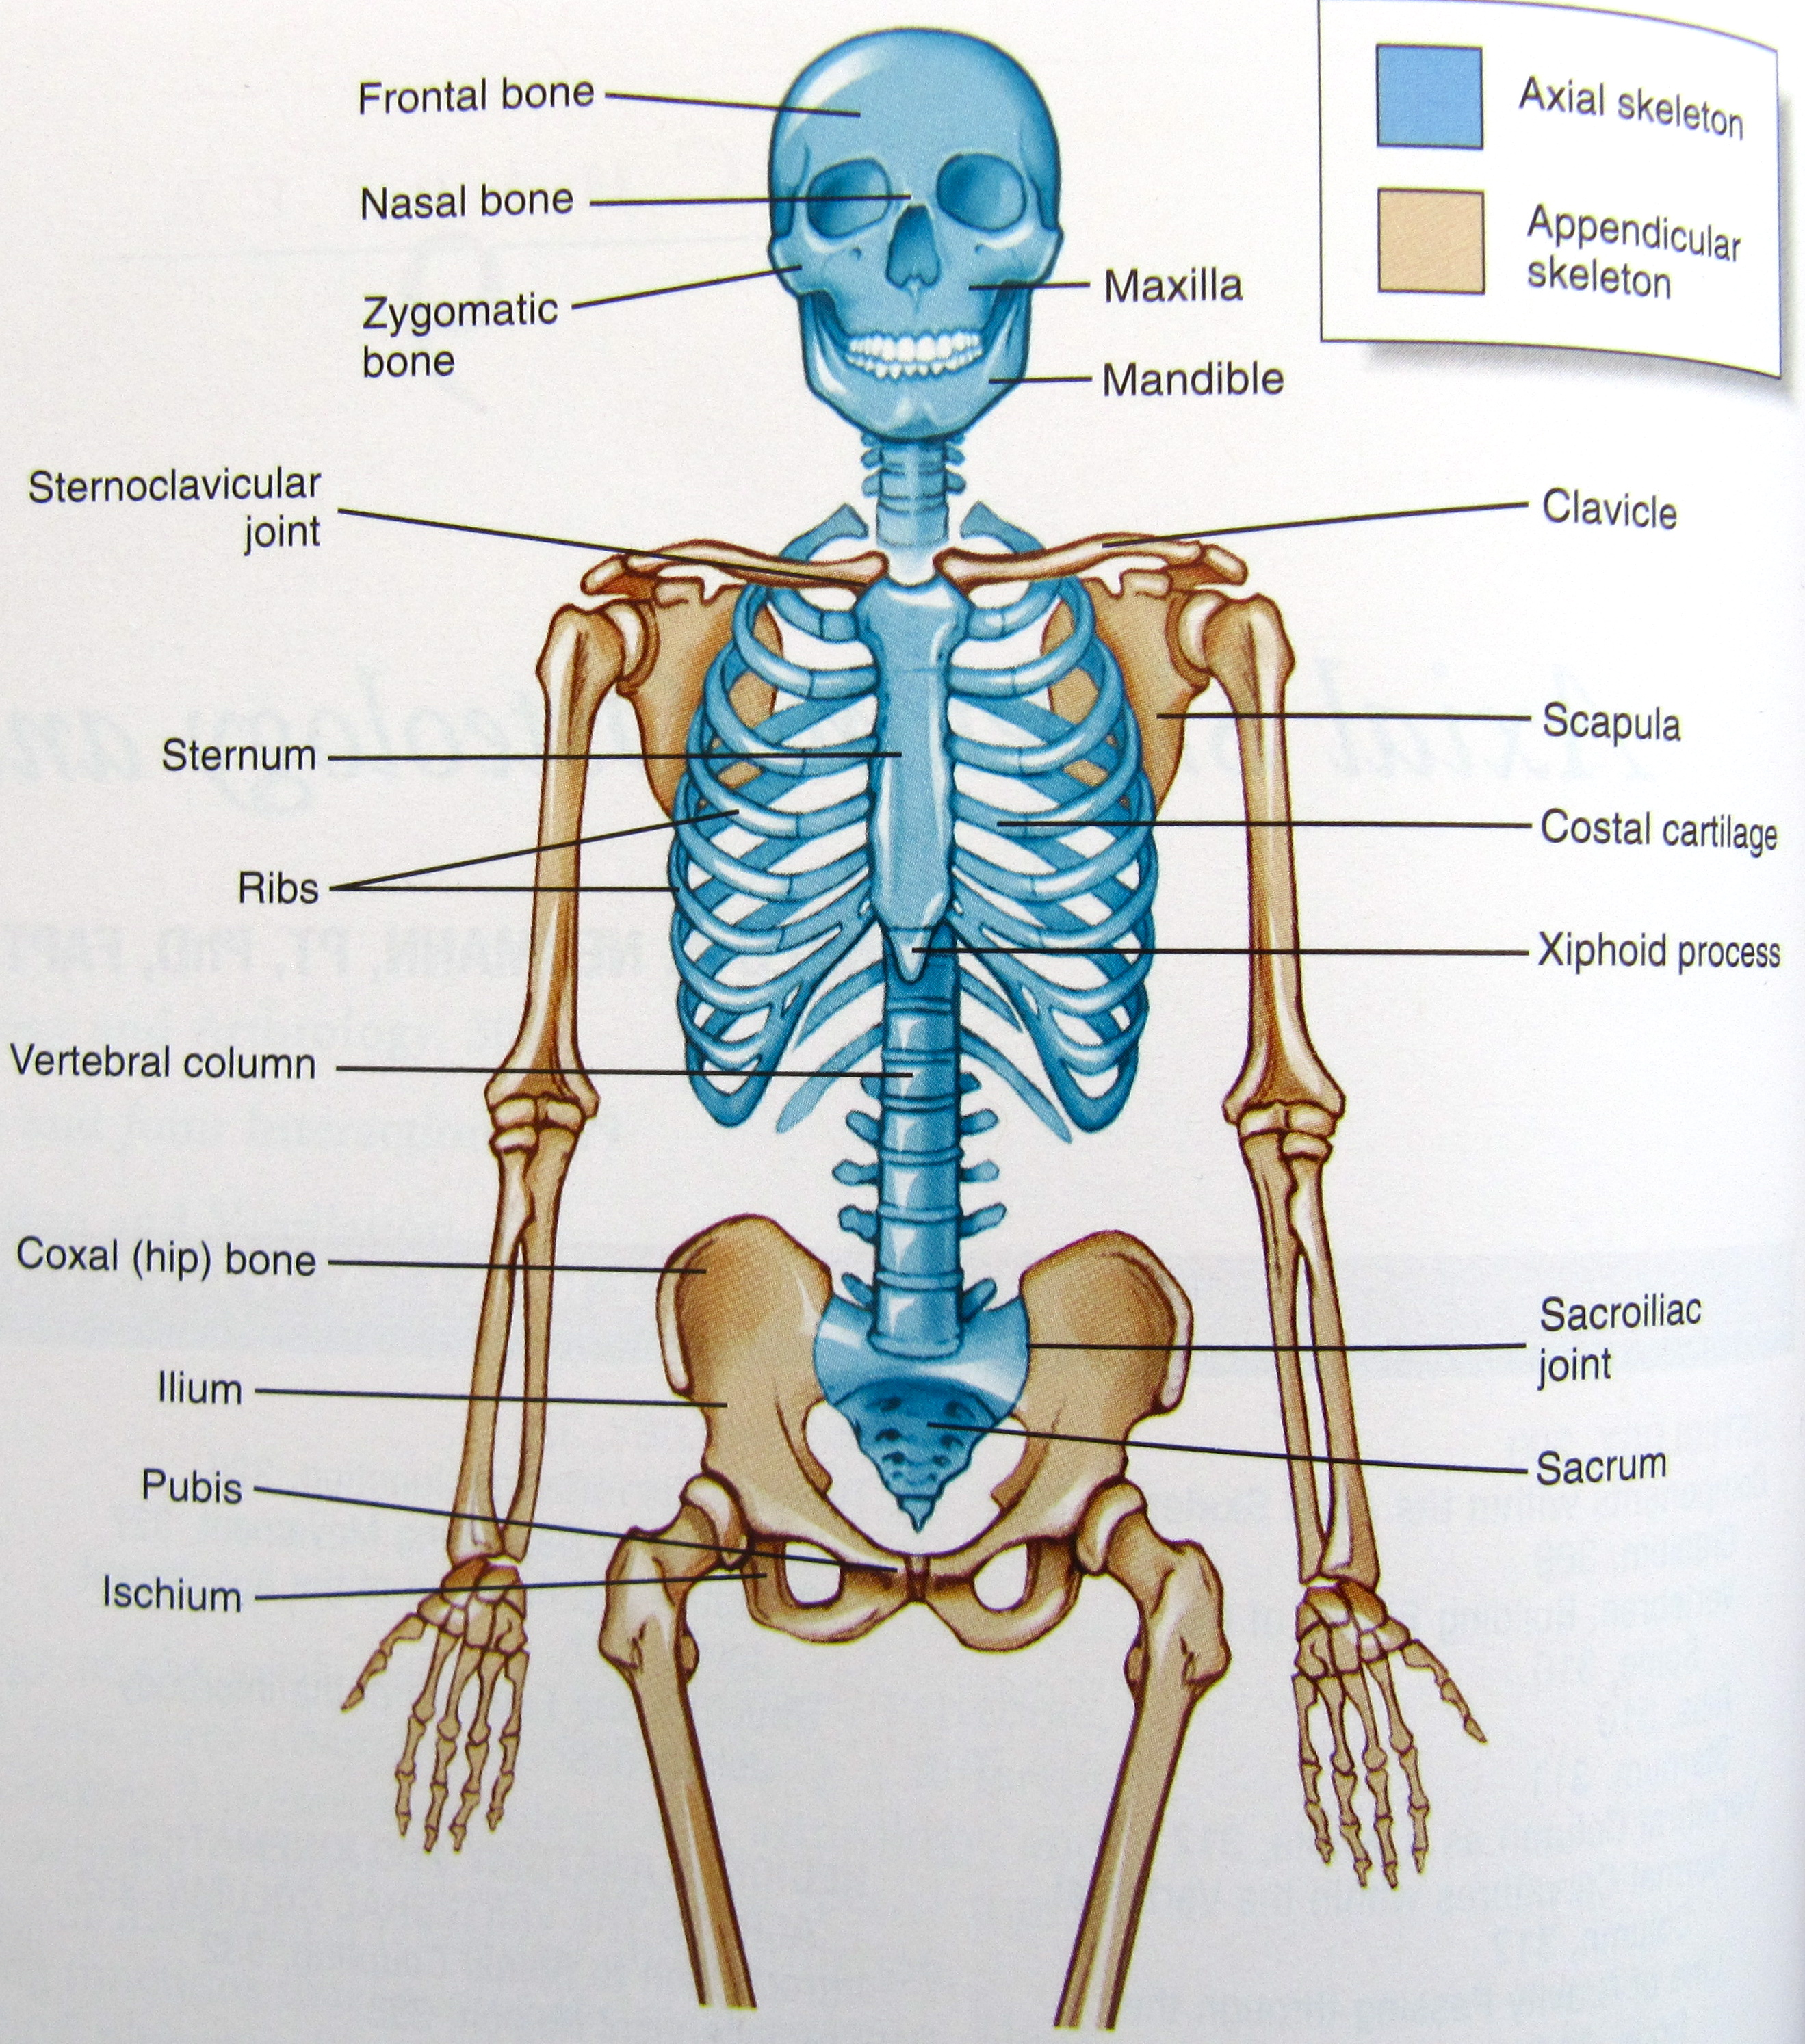 Notes on Anatomy and Physiology: The Spinal Column |